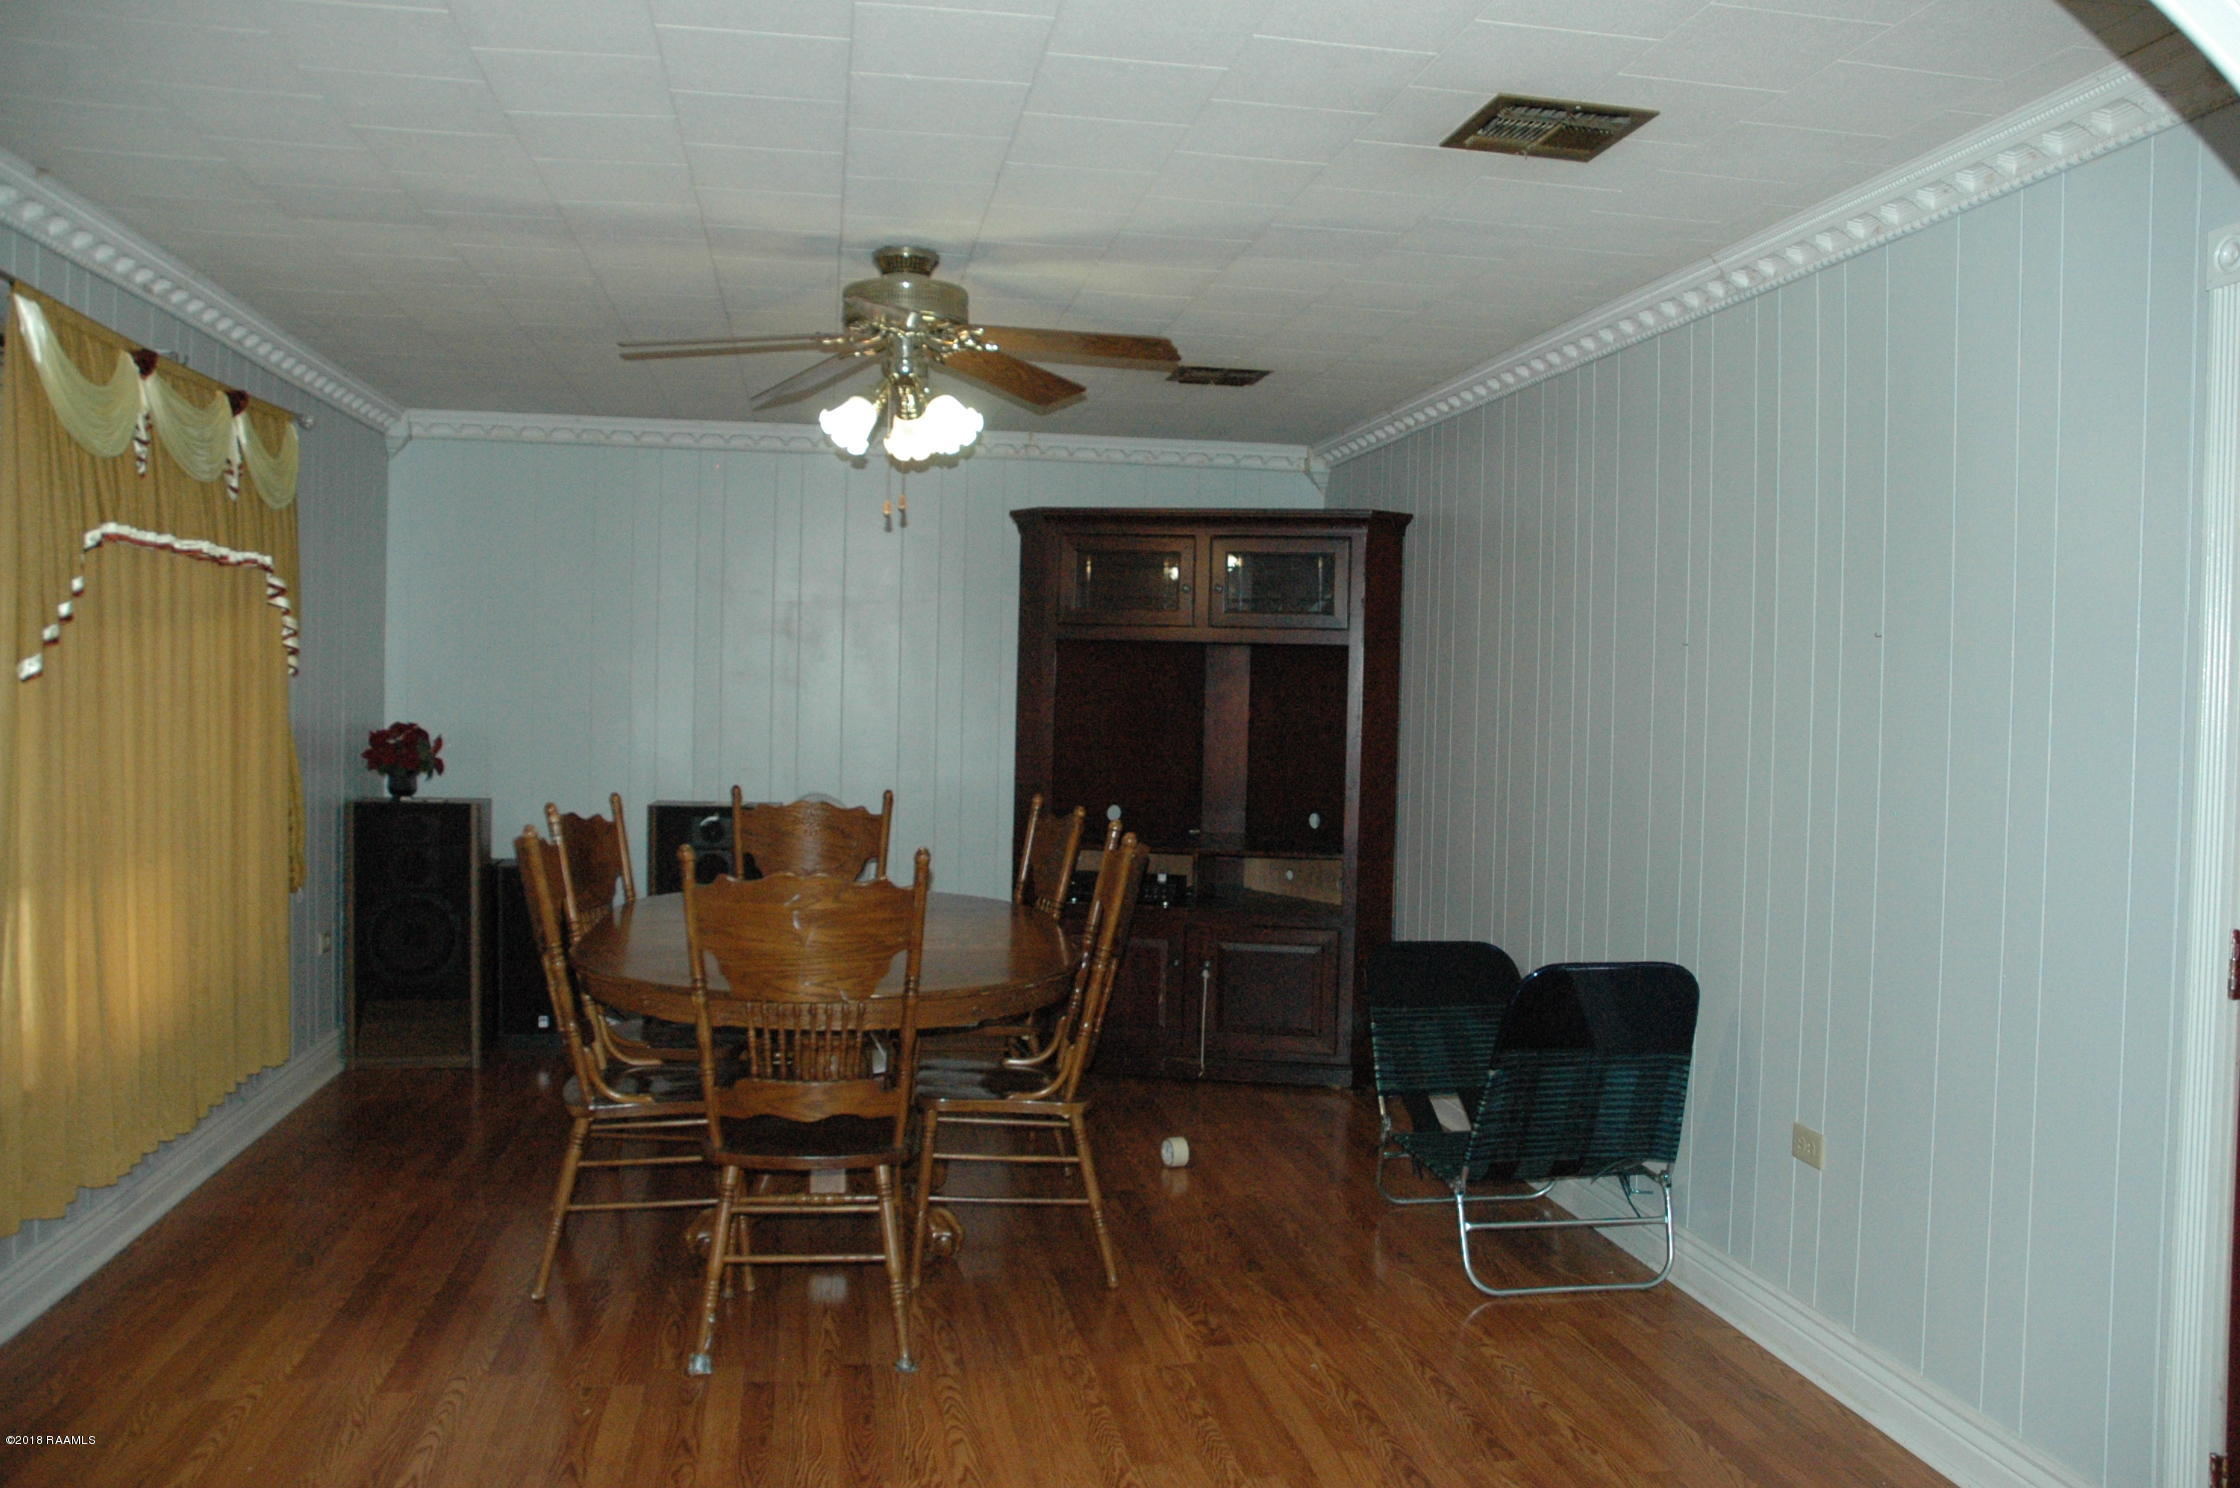 318 Celeste Street, Abbeville, LA 70510 Photo #8